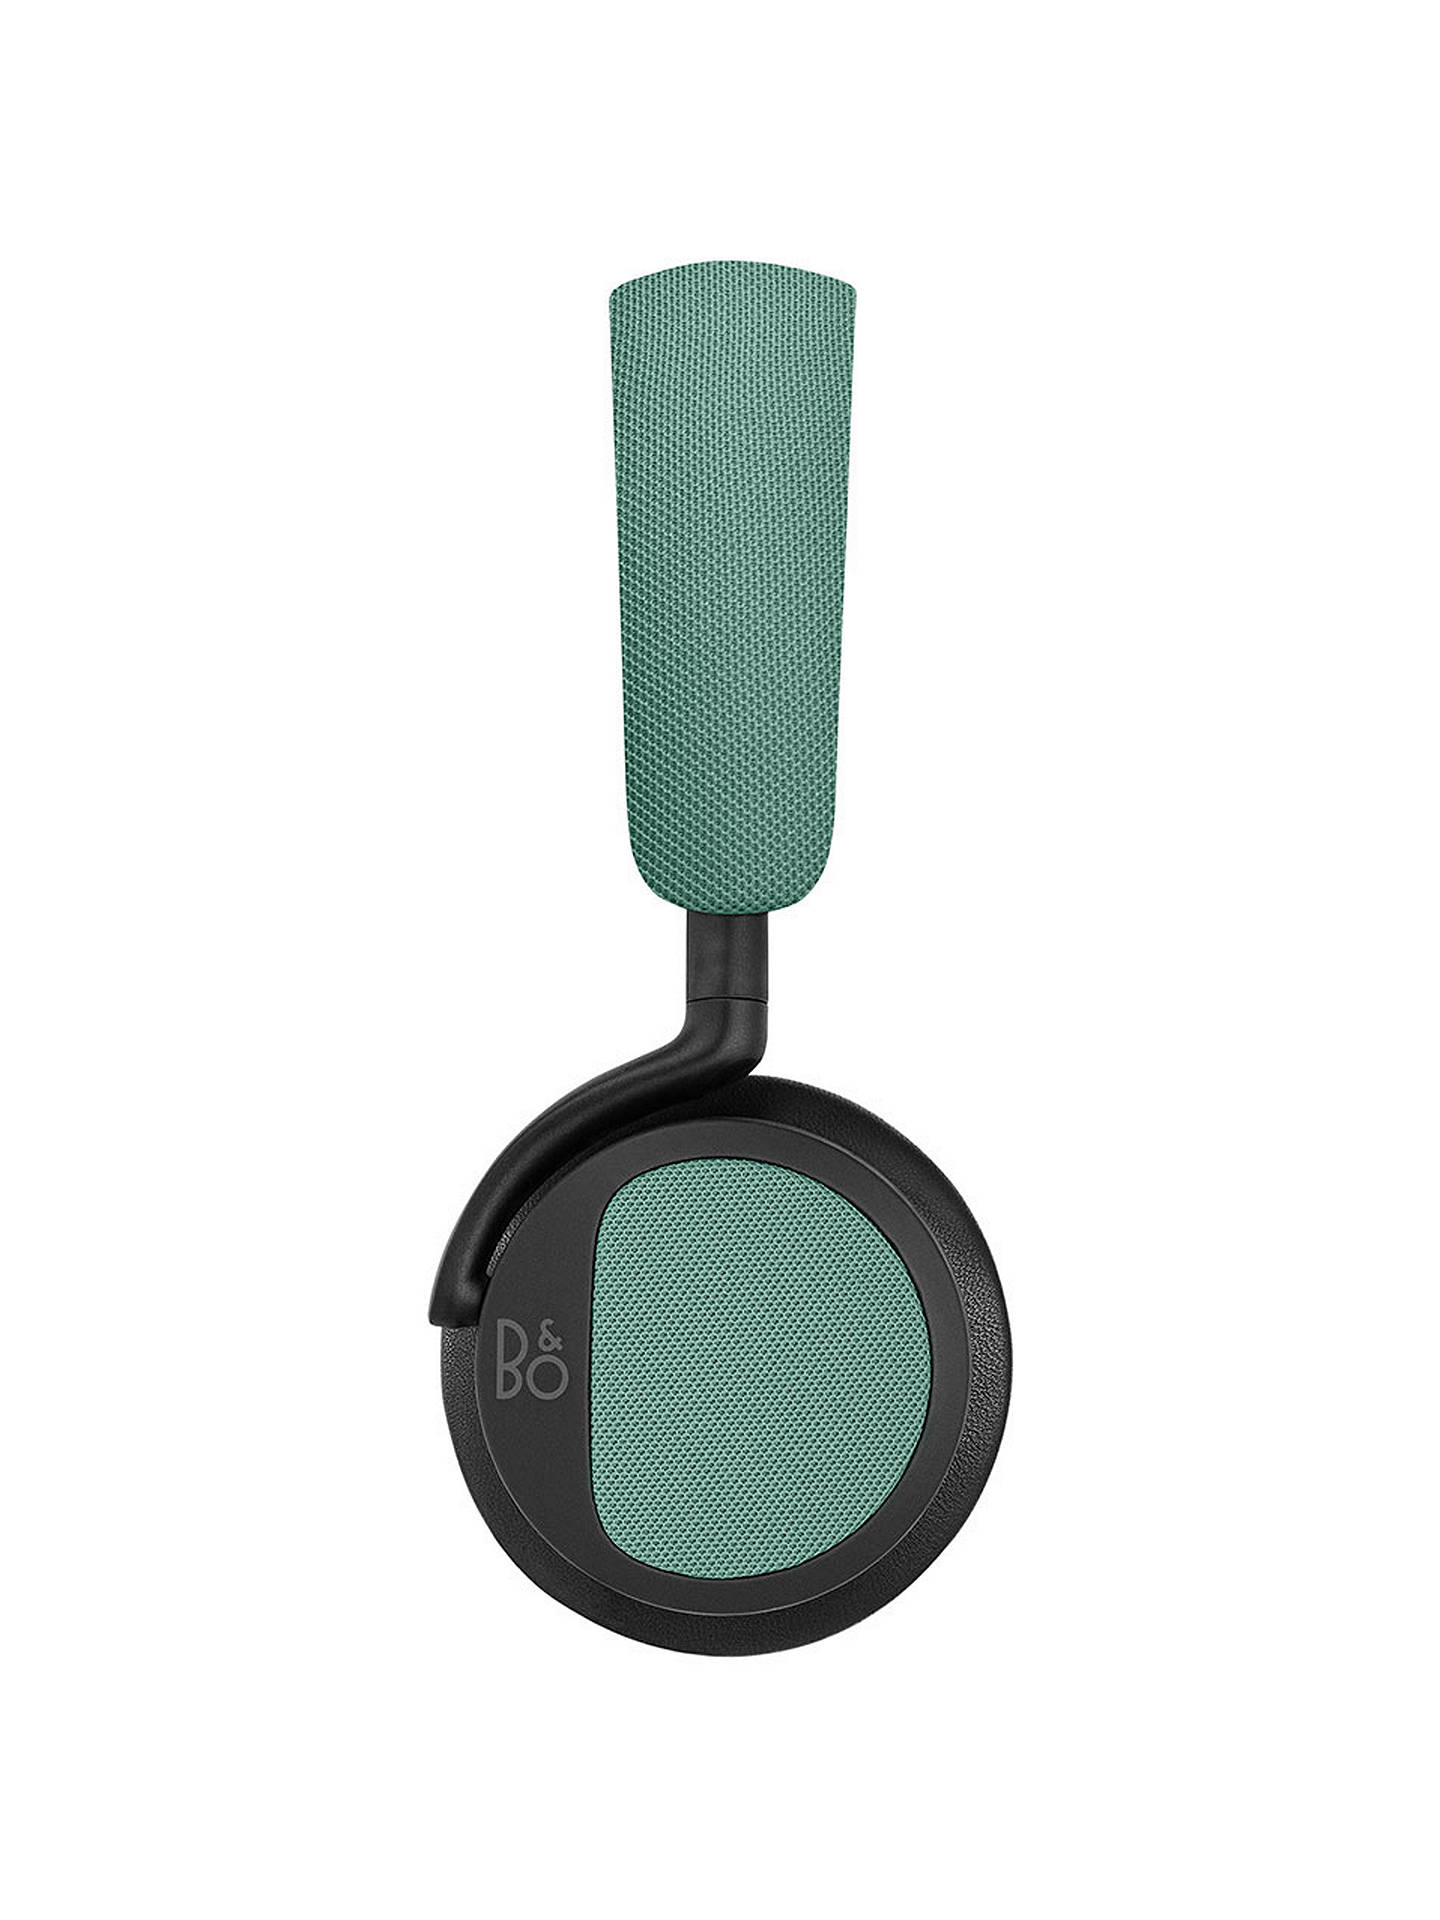 Buy Bang & Olufsen Beoplay H2 On-Ear Headphones with Mic/Remote, Feldspar Green Online at johnlewis.com